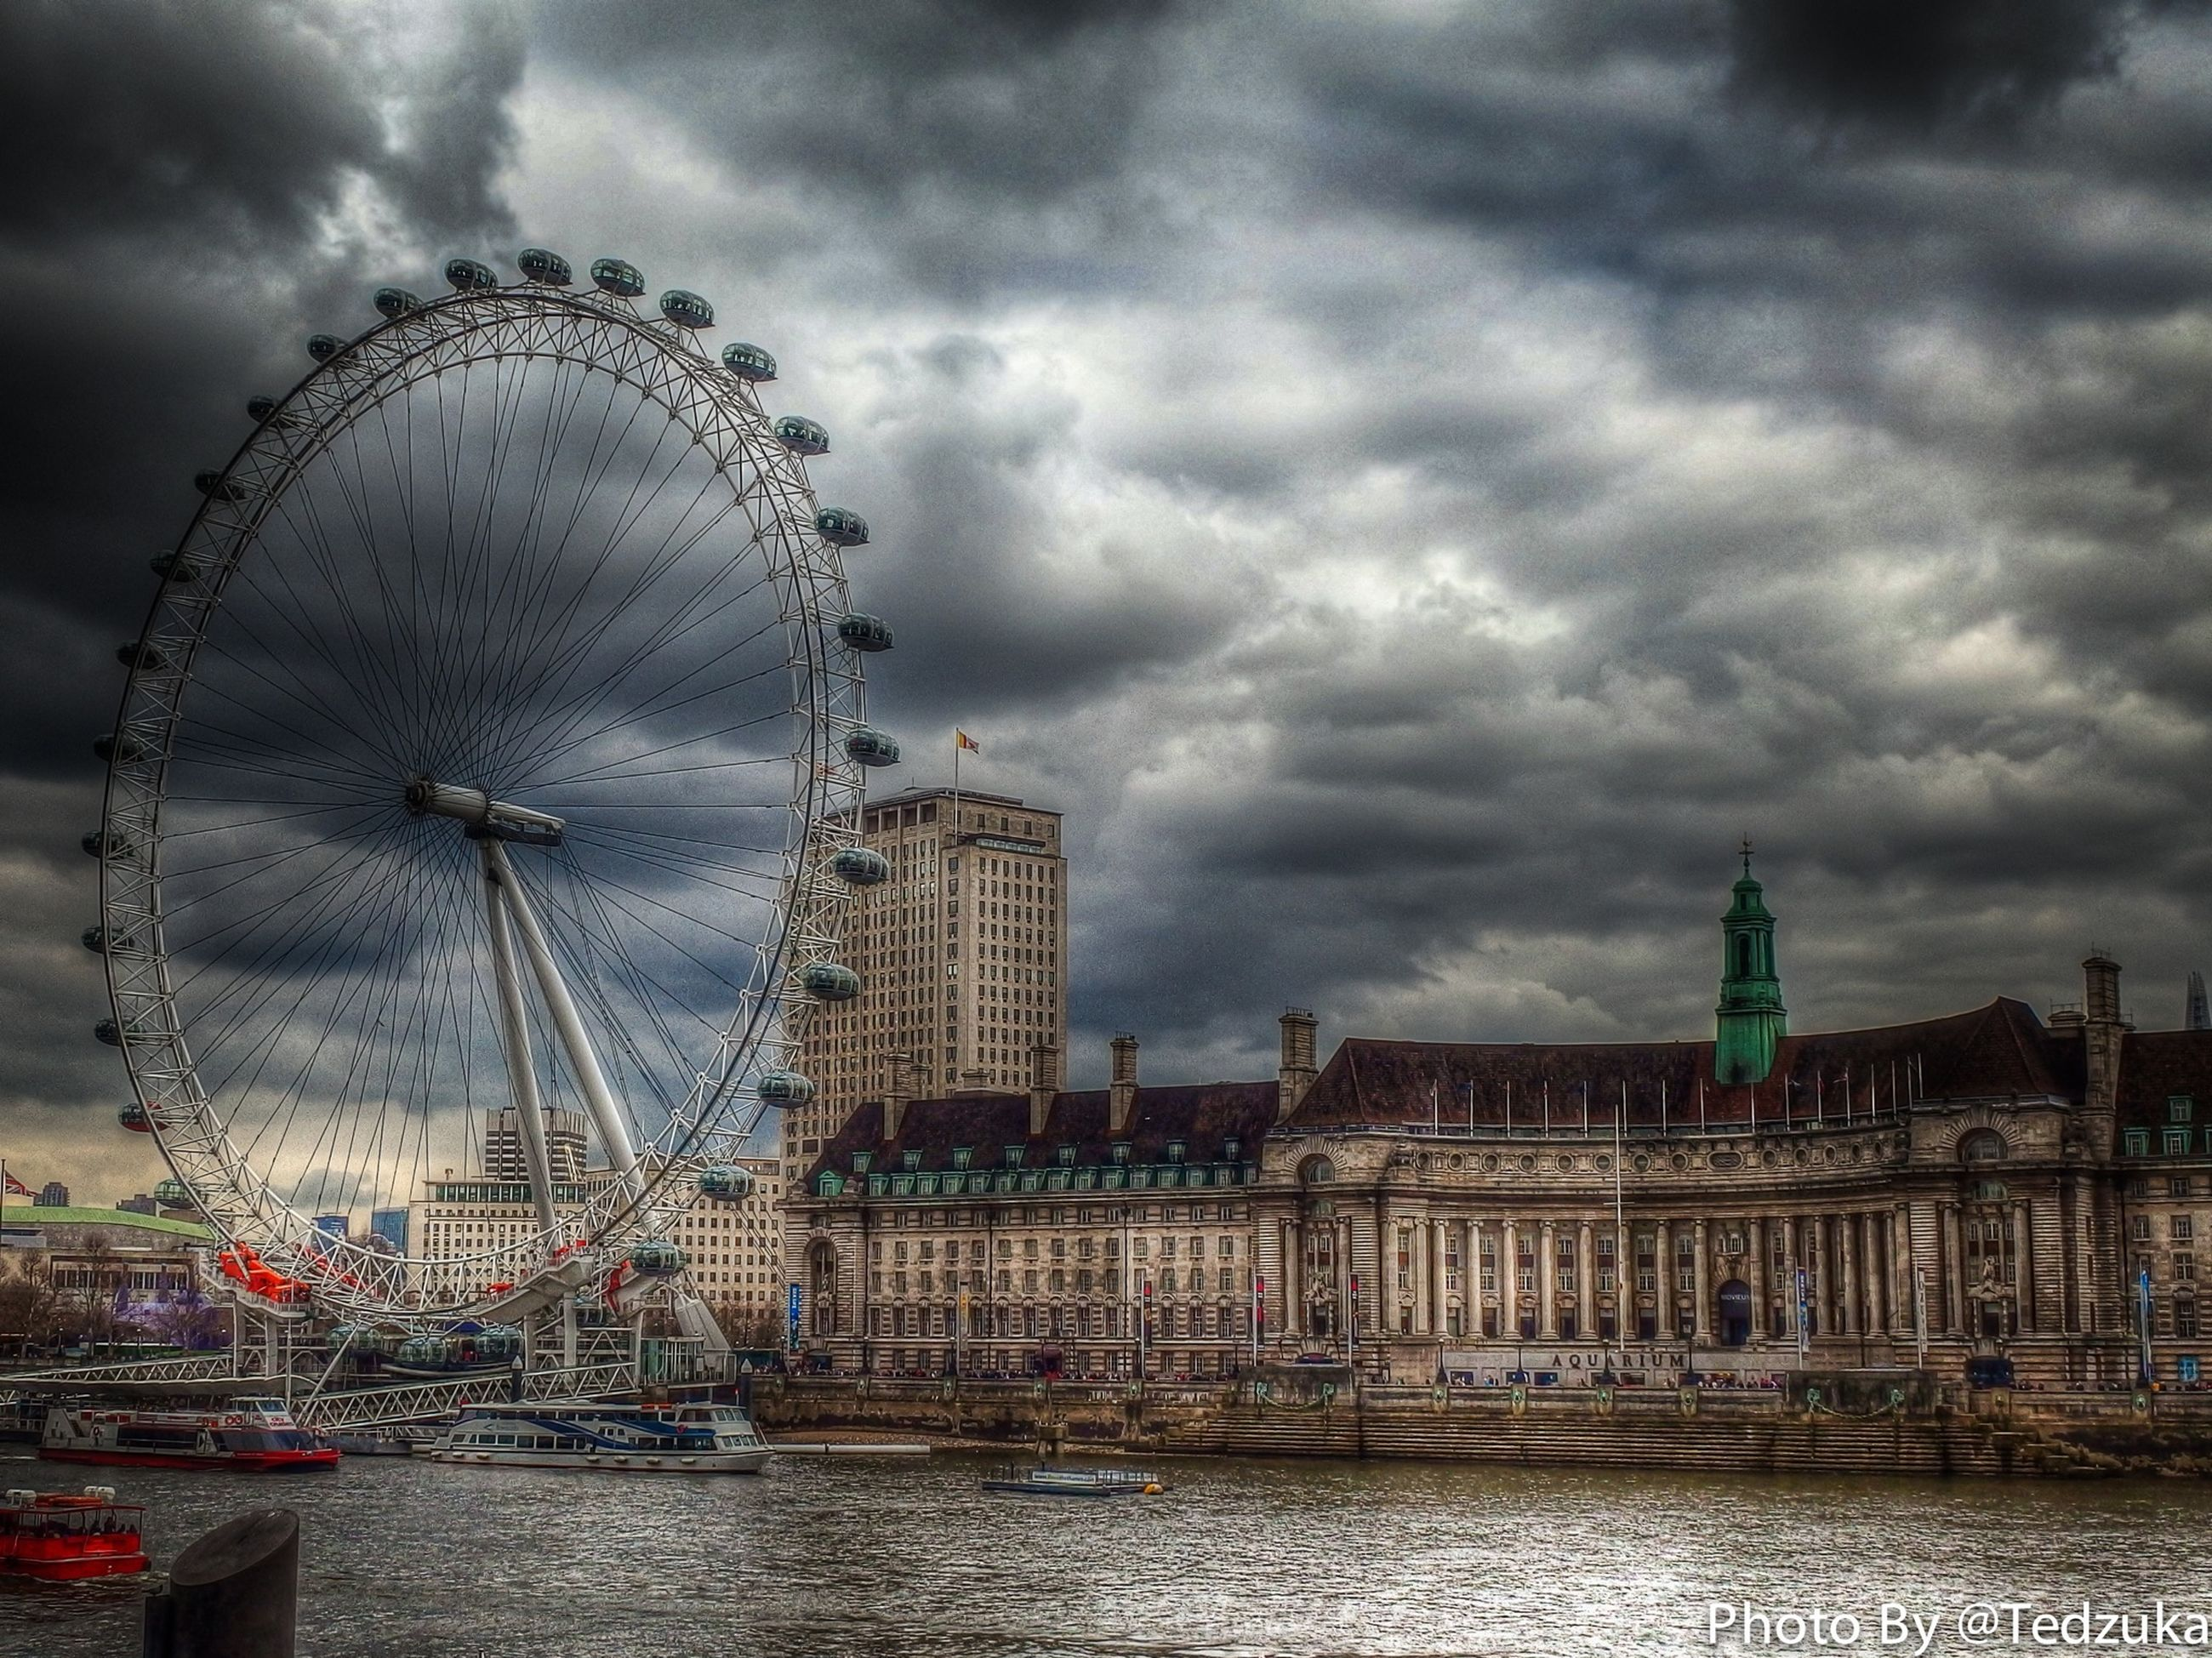 sky, architecture, cloud - sky, cloudy, built structure, building exterior, water, city, weather, ferris wheel, overcast, river, travel destinations, waterfront, capital cities, storm cloud, tall - high, cloud, amusement park ride, famous place